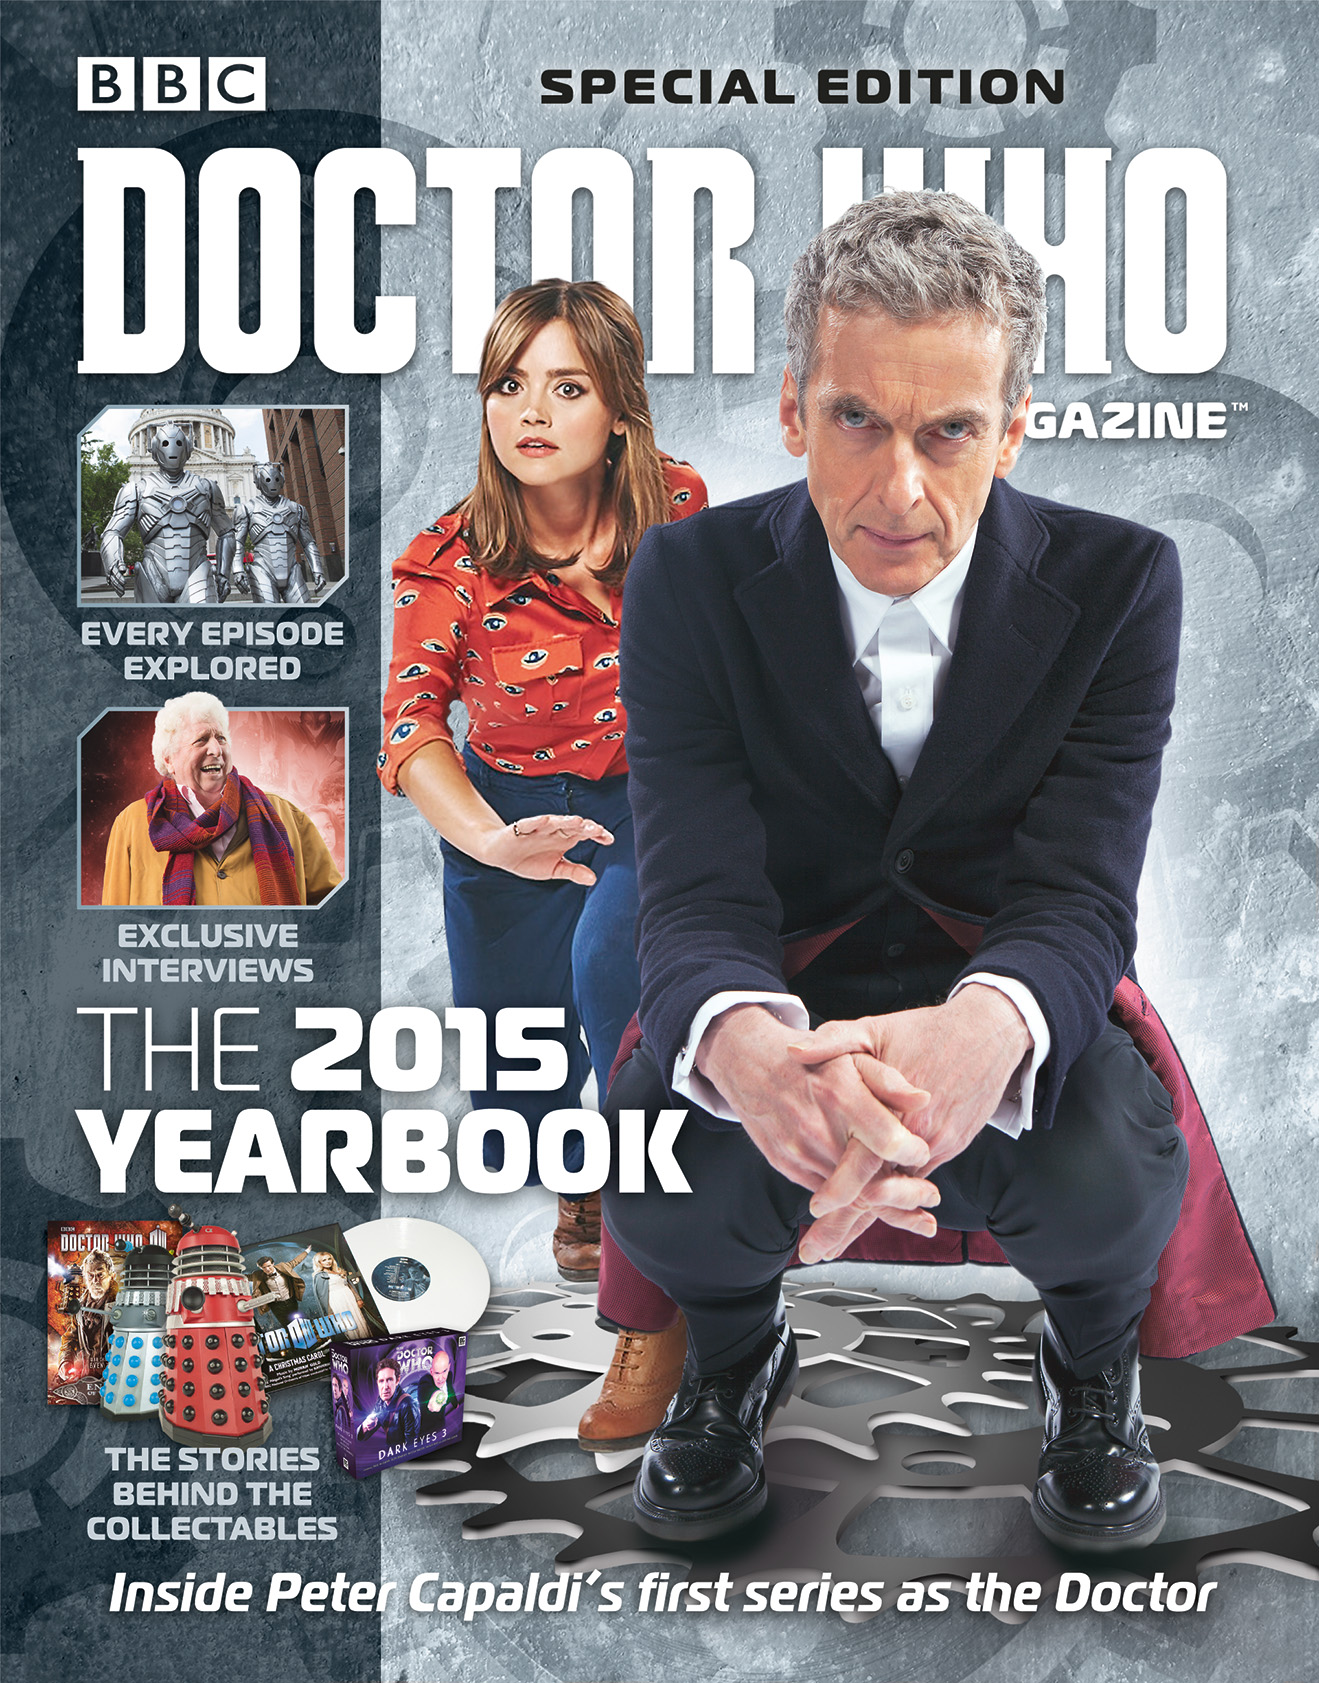 The 2015 Yearbook (Credit: Doctor Who Magazine)